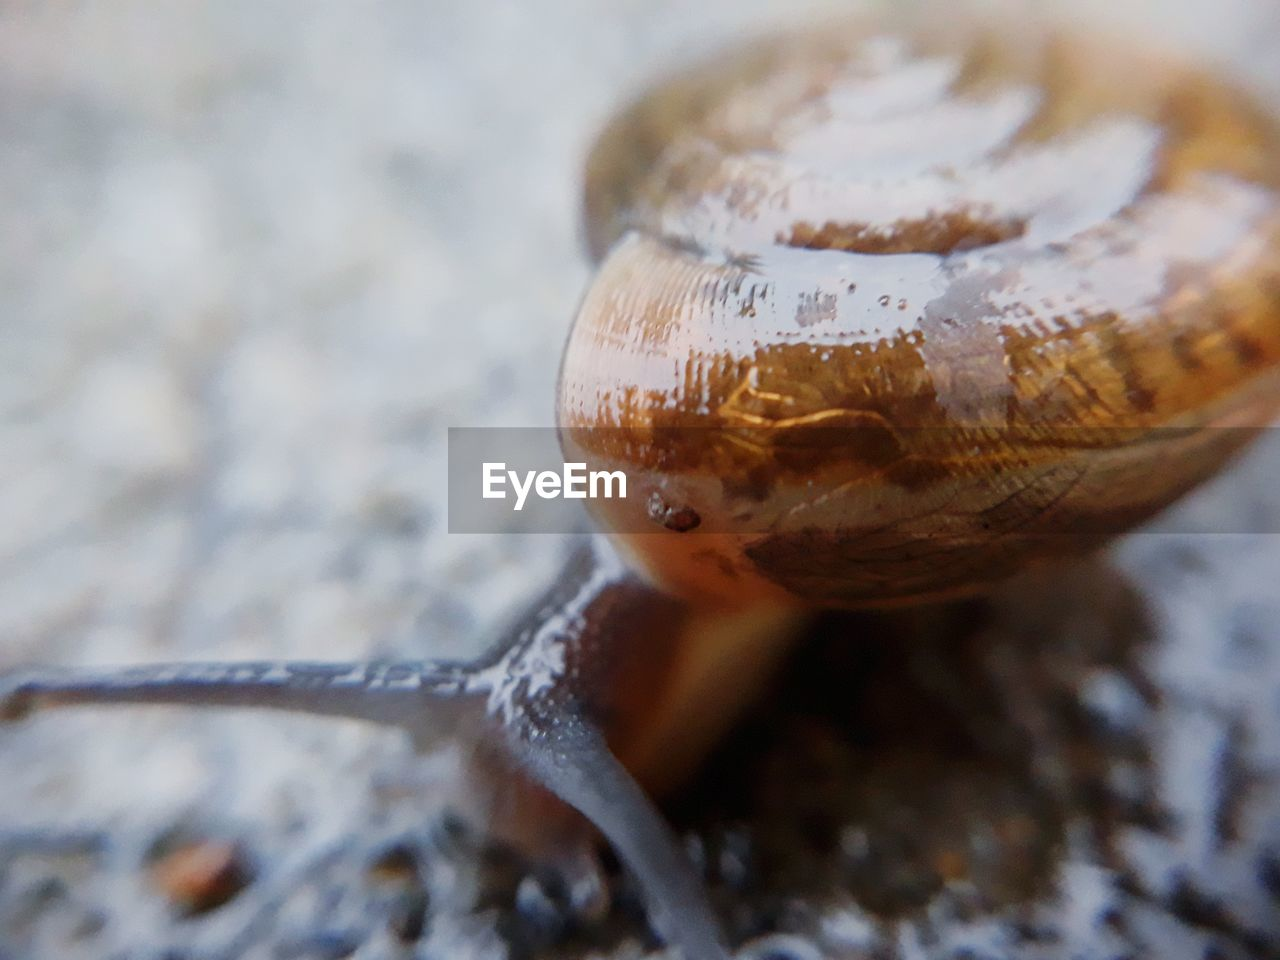 animal themes, one animal, animal, animal wildlife, close-up, animals in the wild, no people, selective focus, gastropod, focus on foreground, nature, glass - material, outdoors, day, transparent, animal body part, mollusk, reptile, reflection, snail, small, animal eye